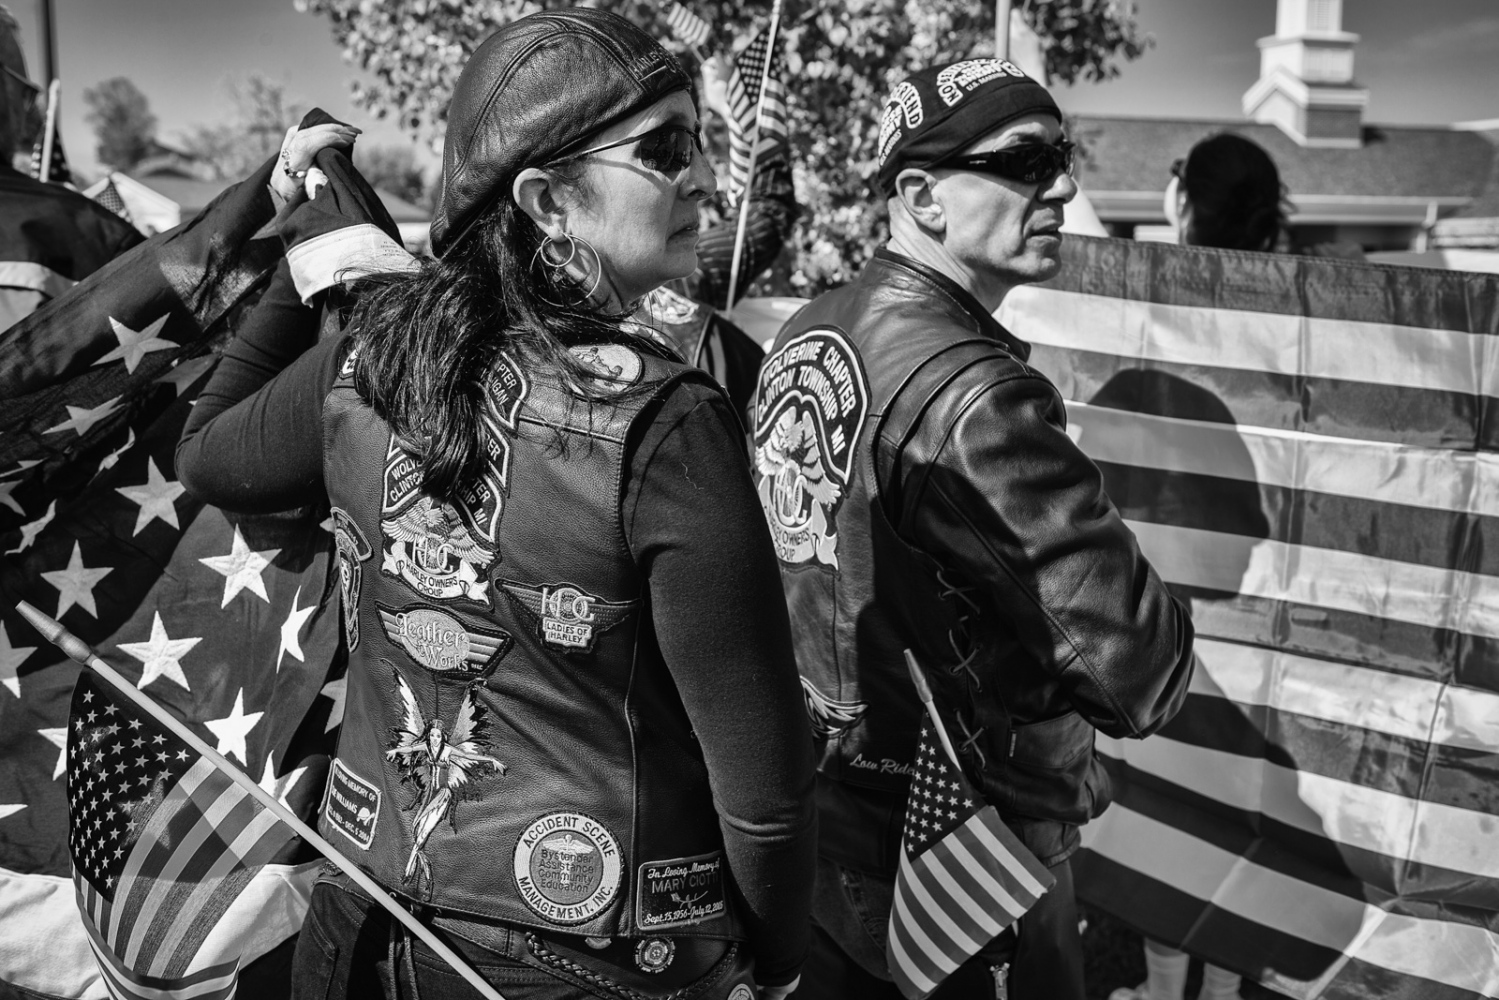 Bikers at Funeral for American Soldier killed in Iraq/Afghanistan